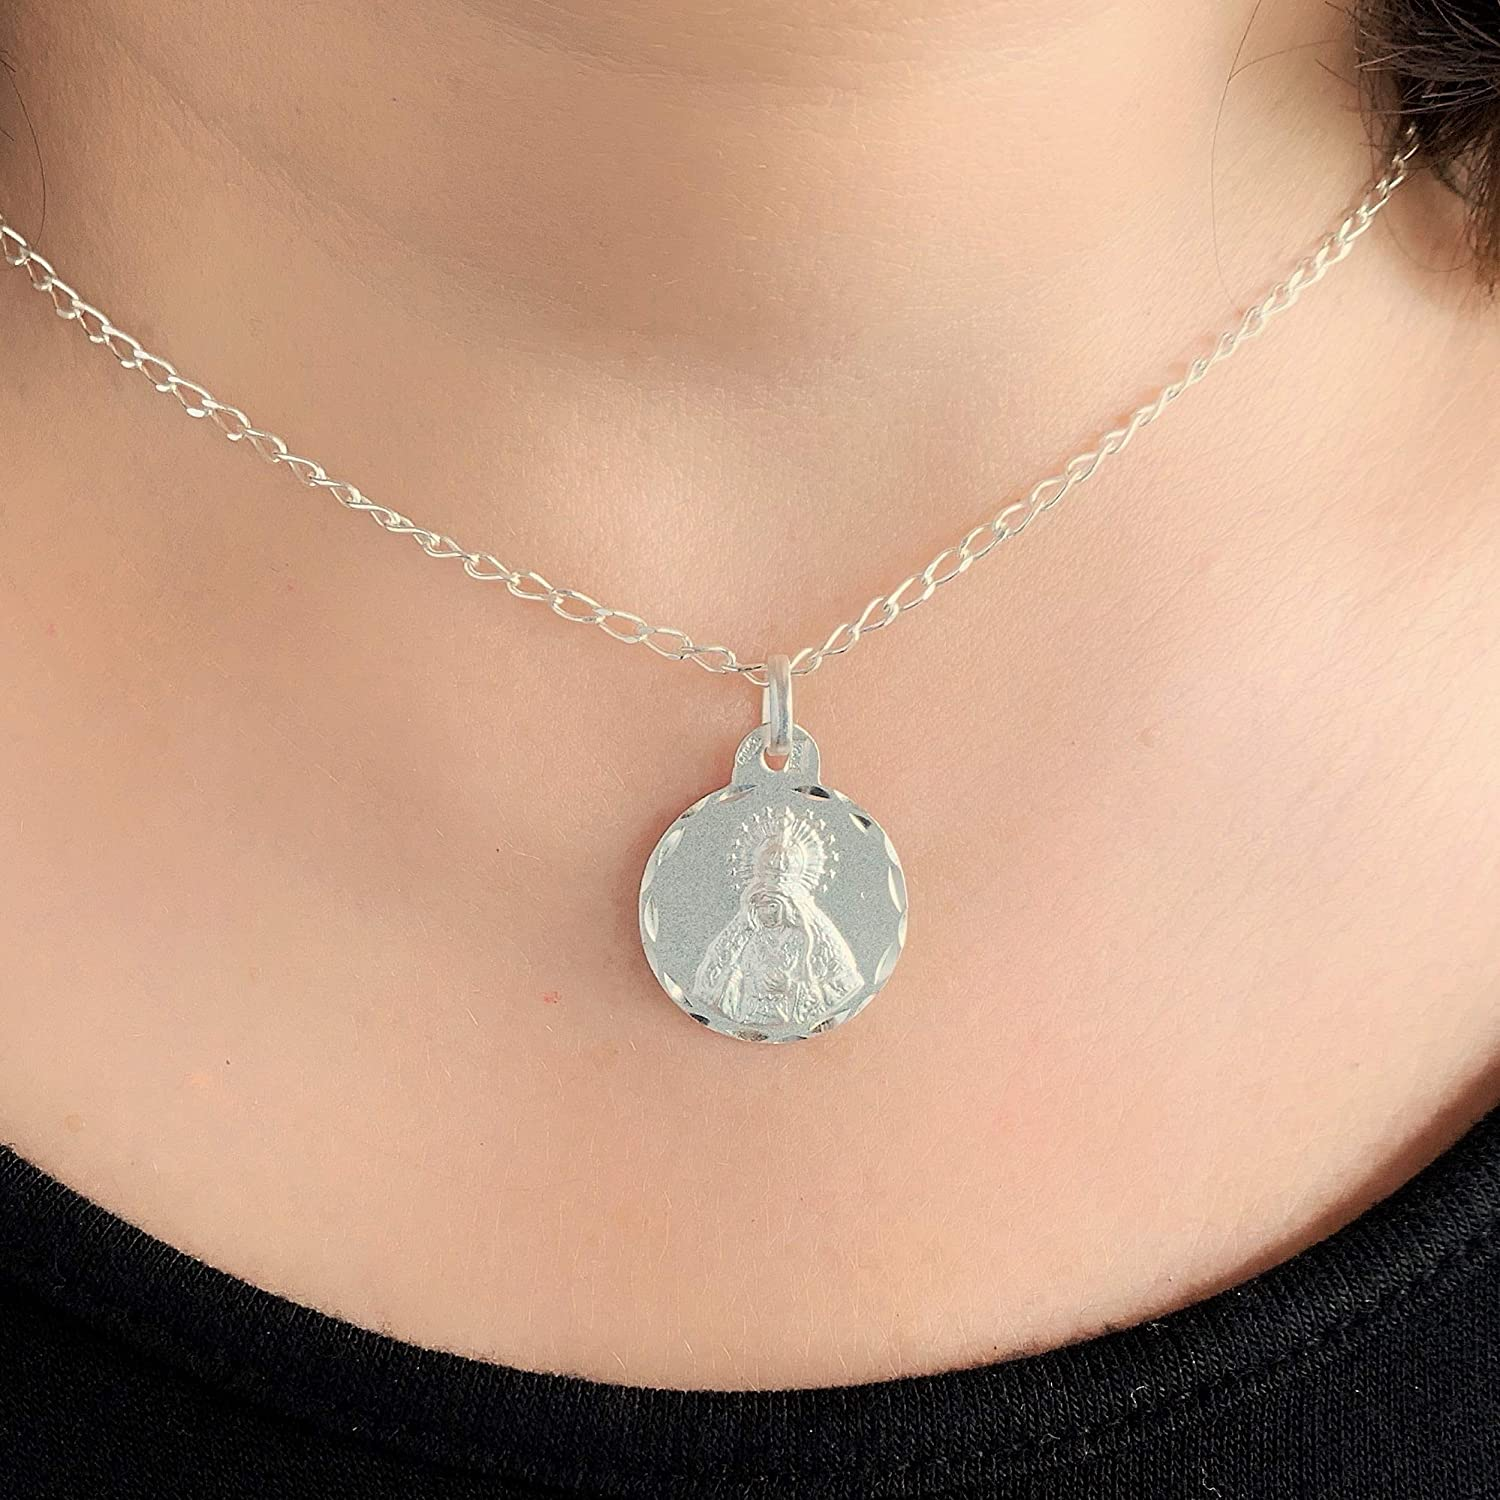 Hand-crafted sterling silver pendant made in Seville Spain